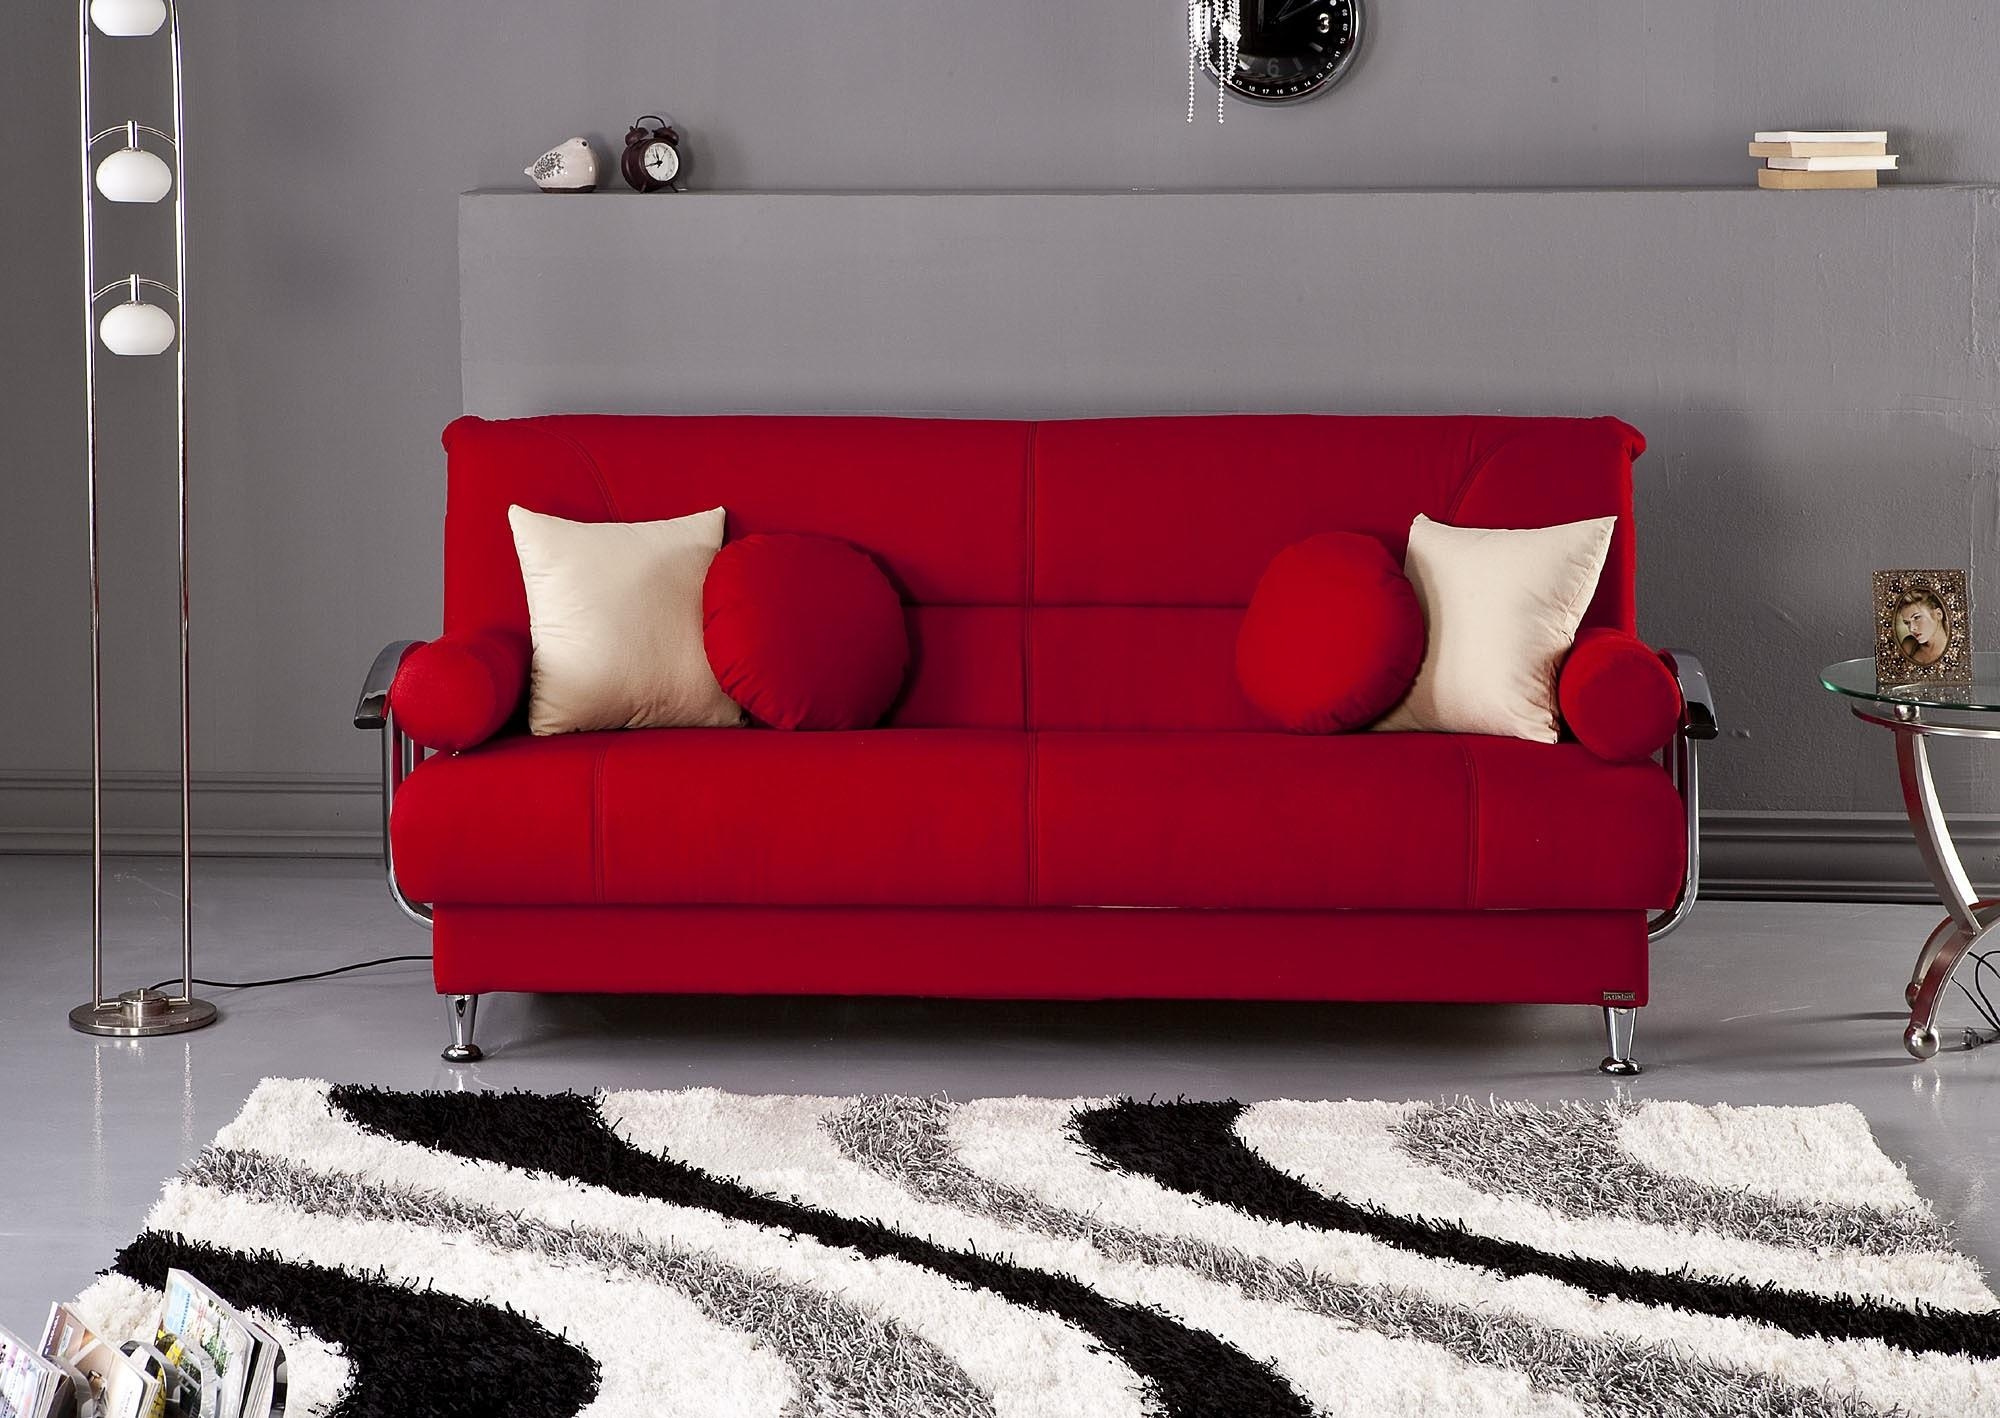 20 ideas of red sofa tables sofa ideas Red sofa ideas